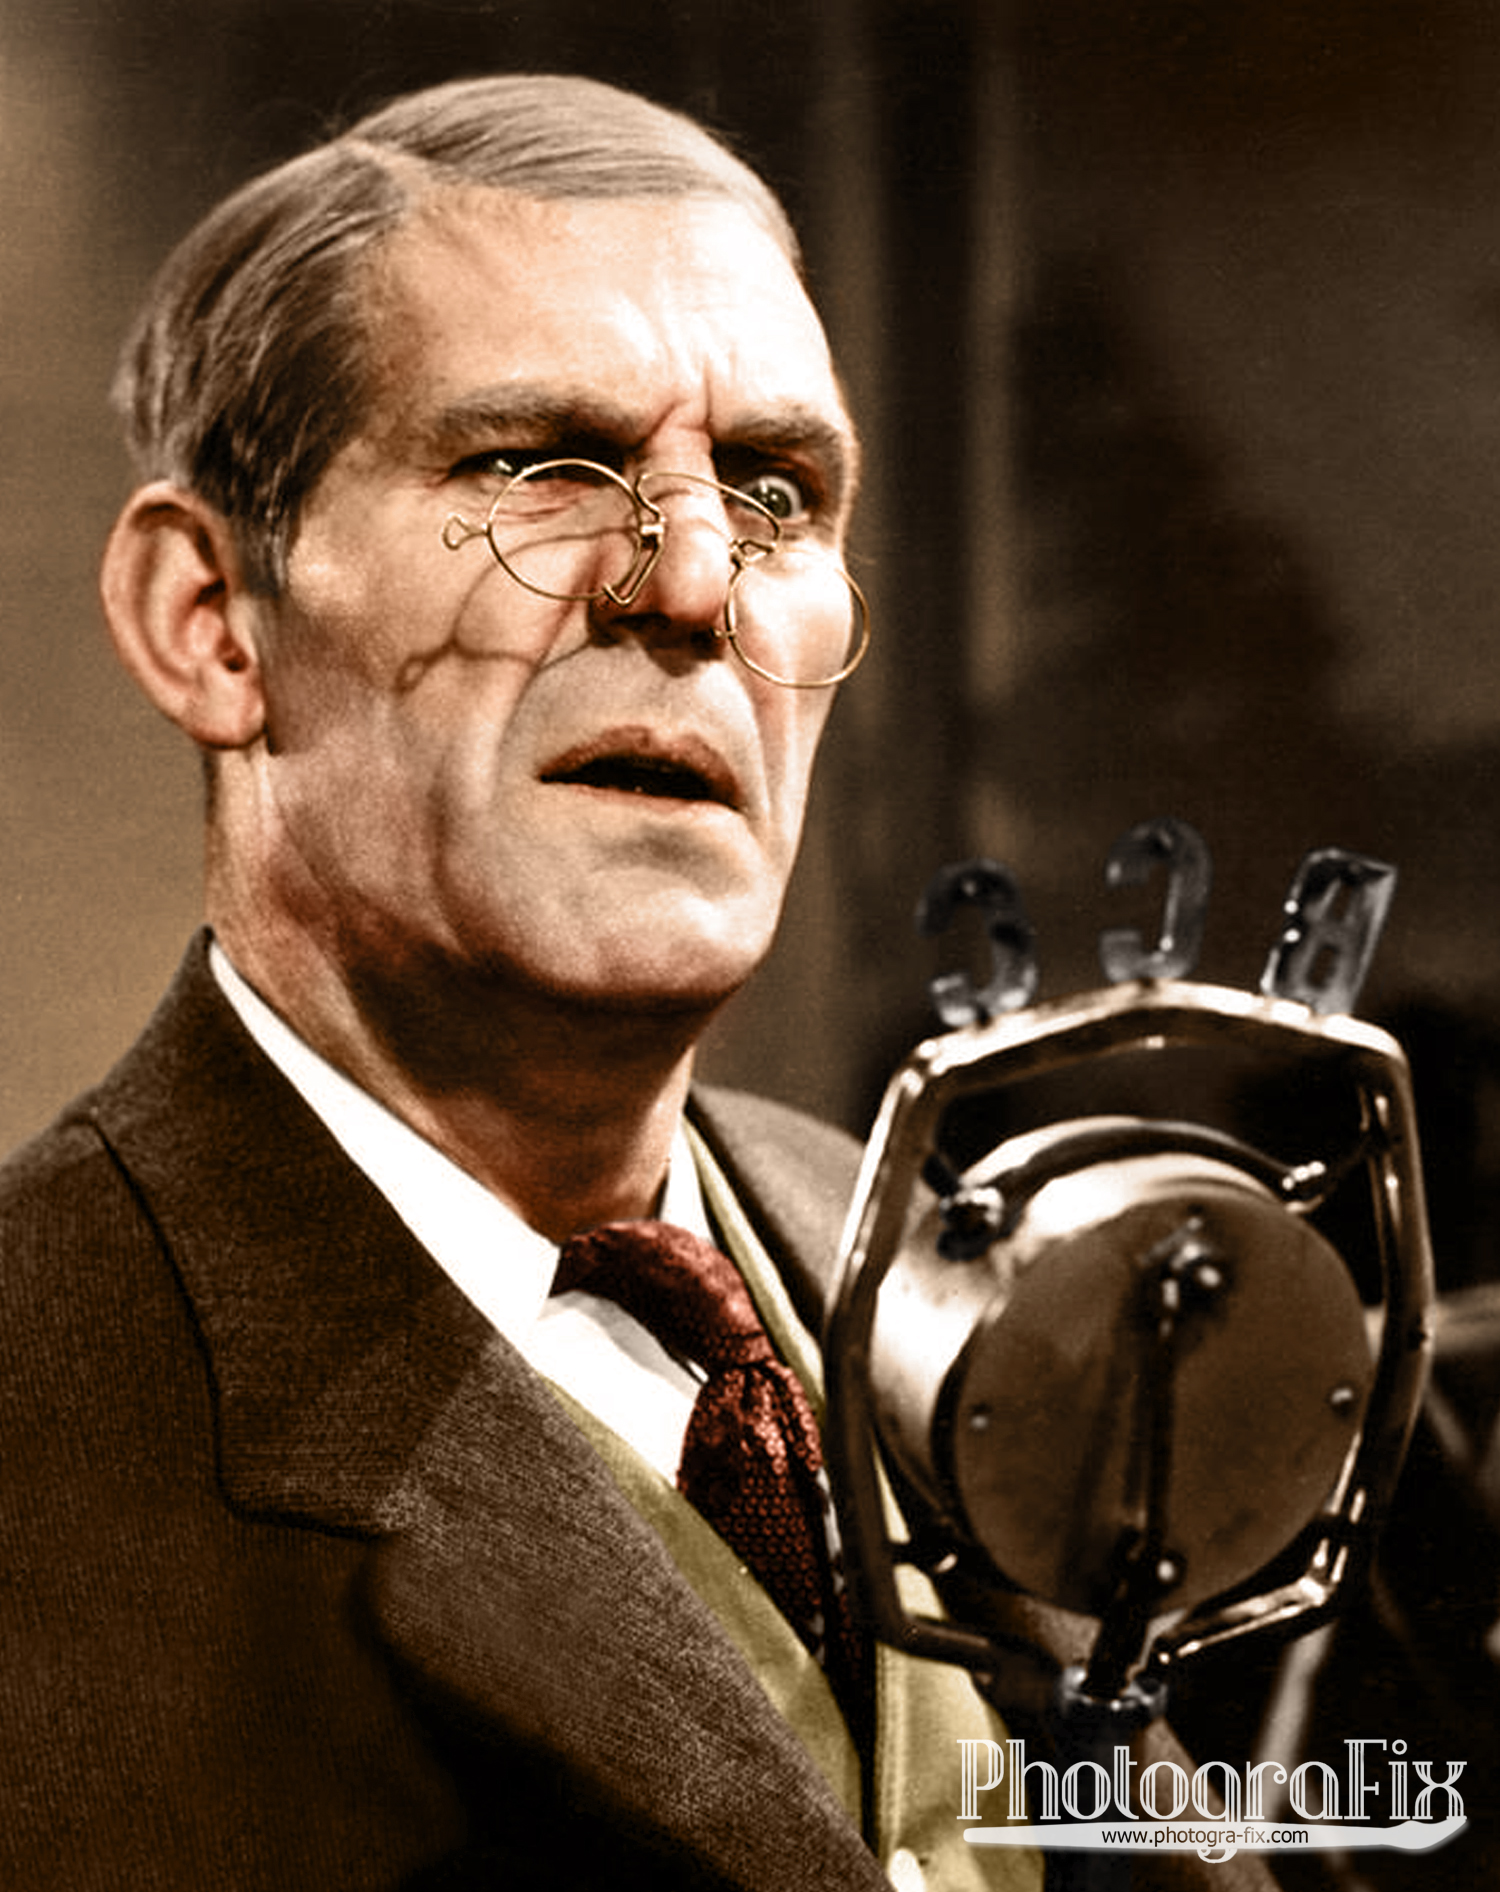 Will Hay in 'Hey! Hey! USA!'